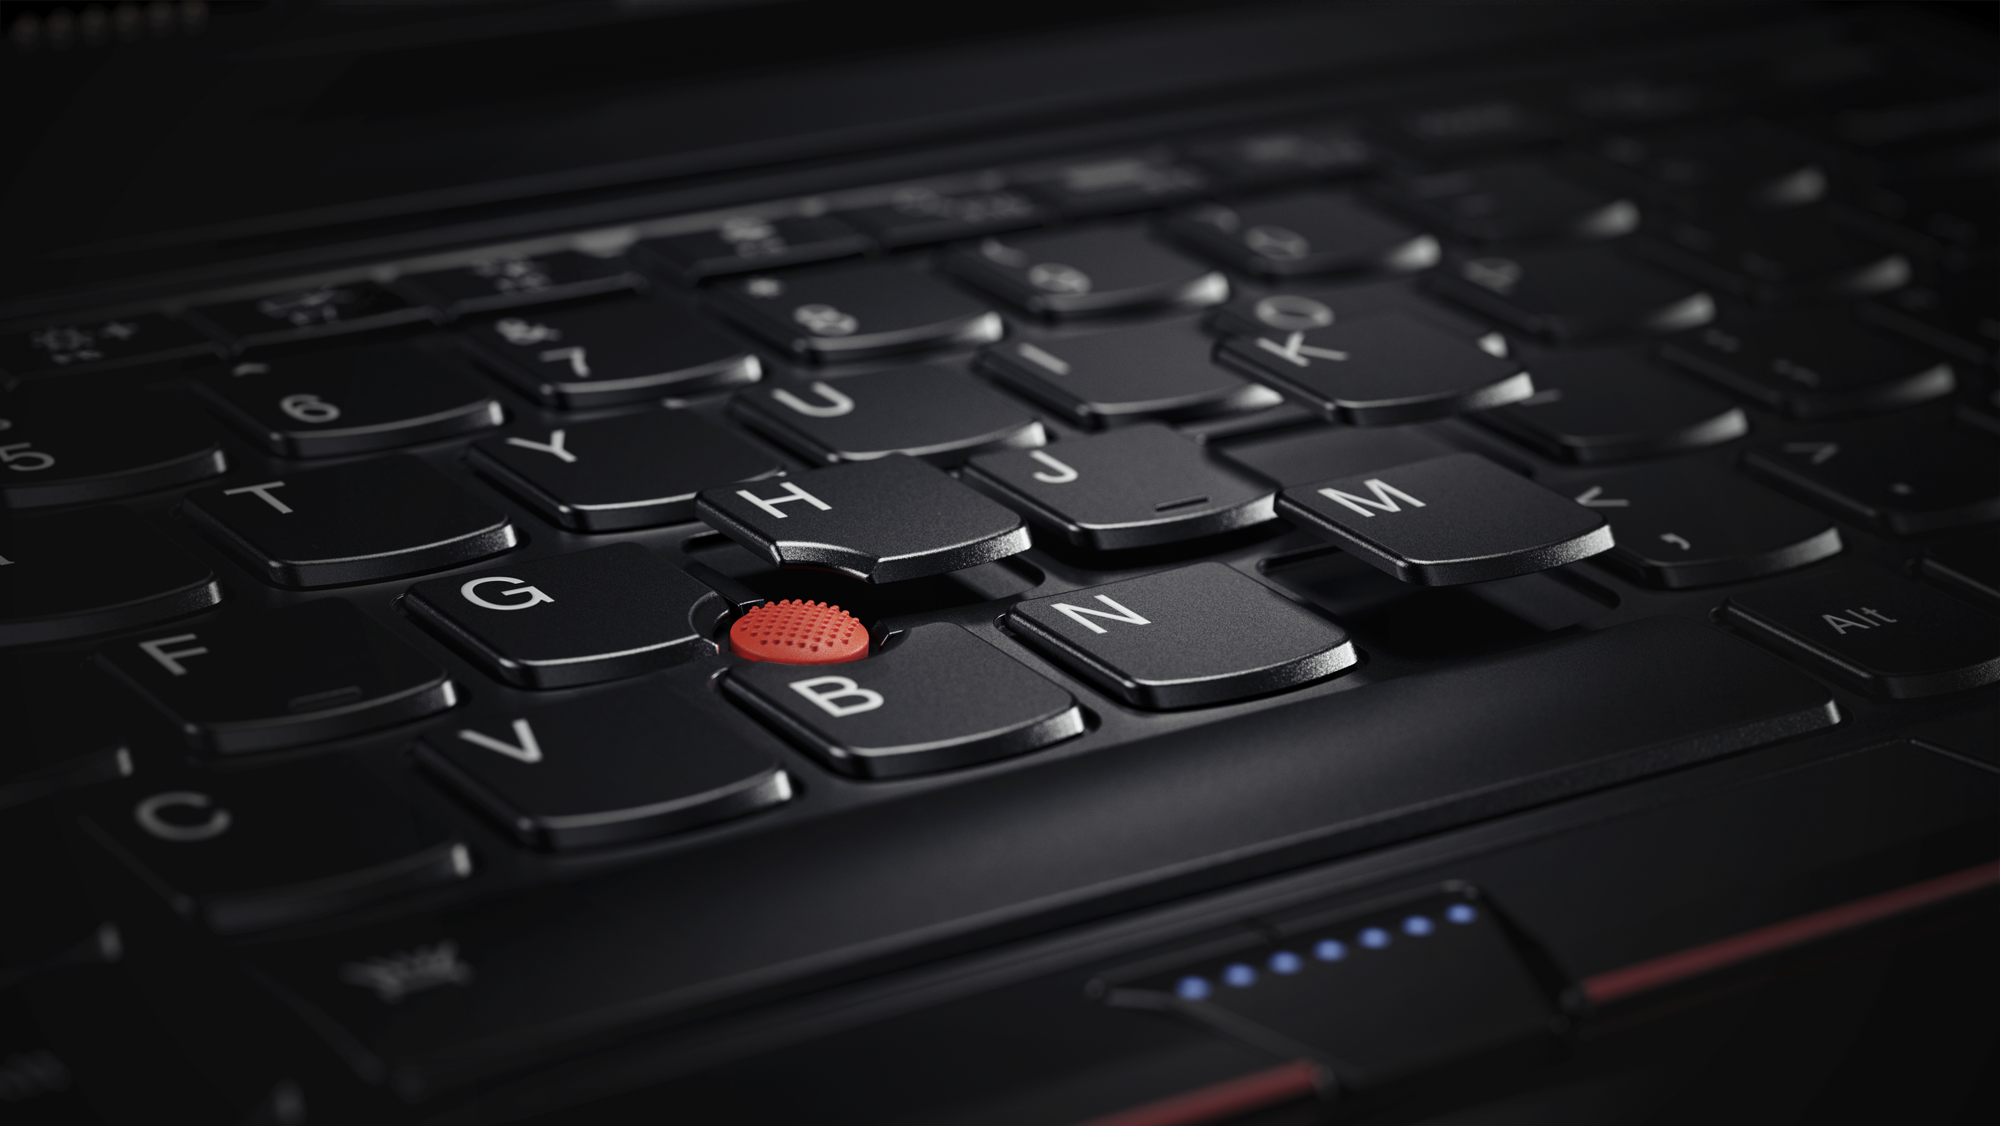 15_X1_Tablet_Keyboard_Red_Trackpoint.png